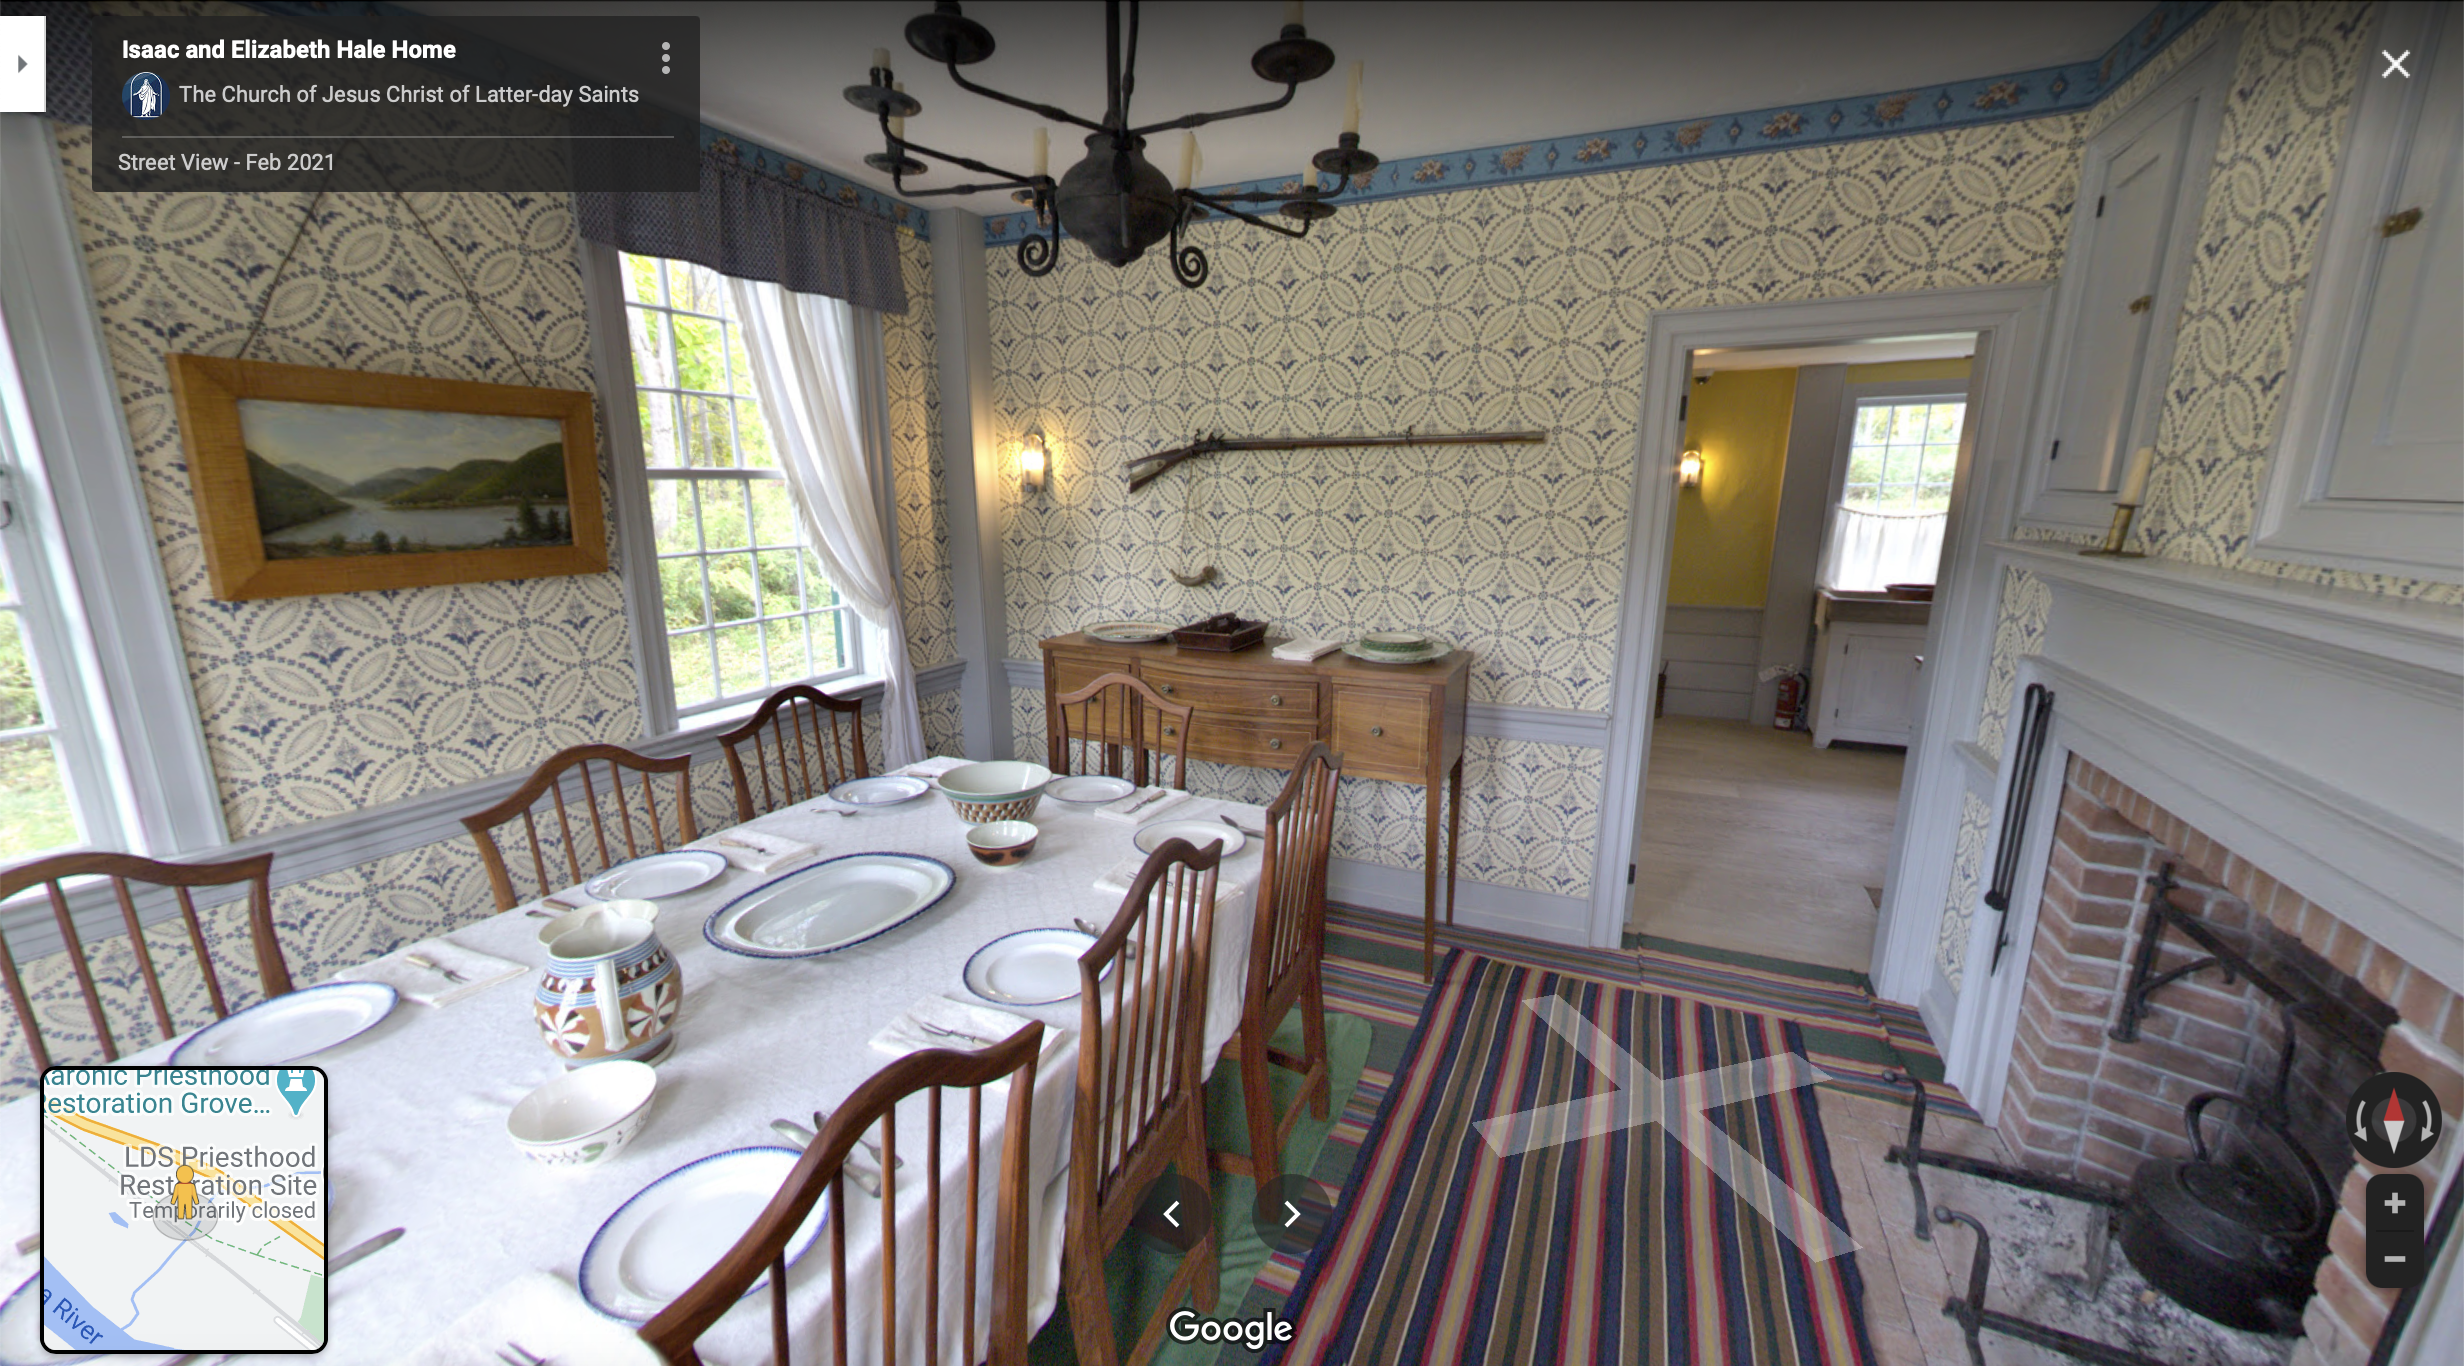 Screenshot of the Google Maps 360 view of Isaac Hale Home